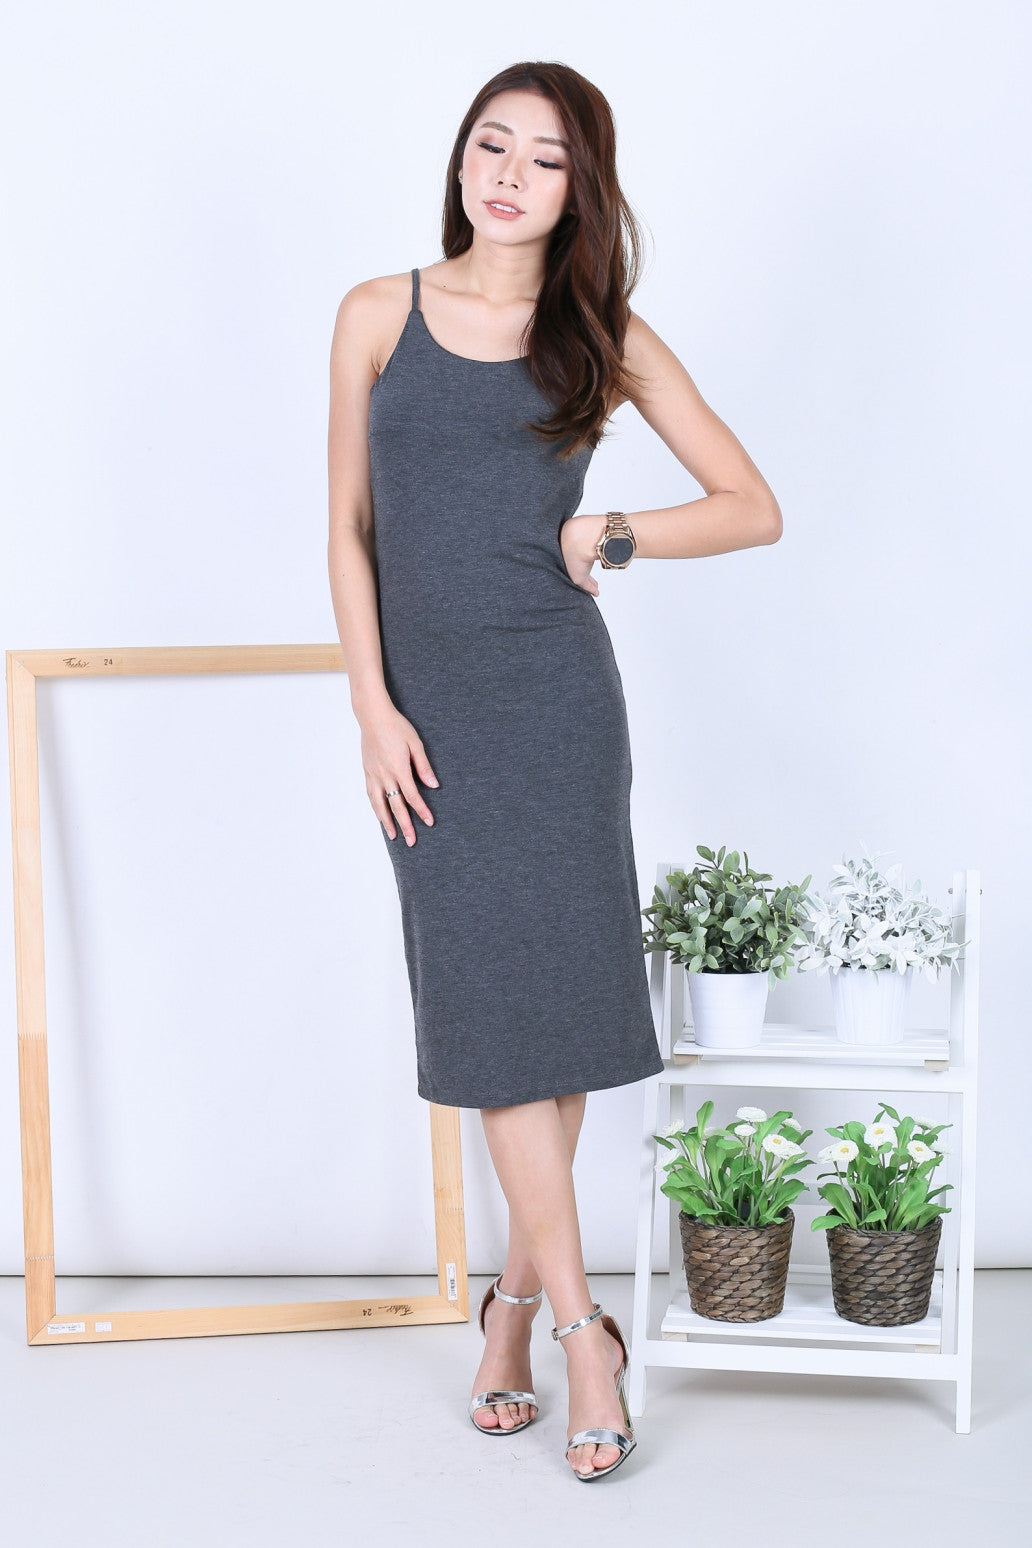 FEL BASIC SPAG MIDI IN DARK GREY - TOPAZETTE